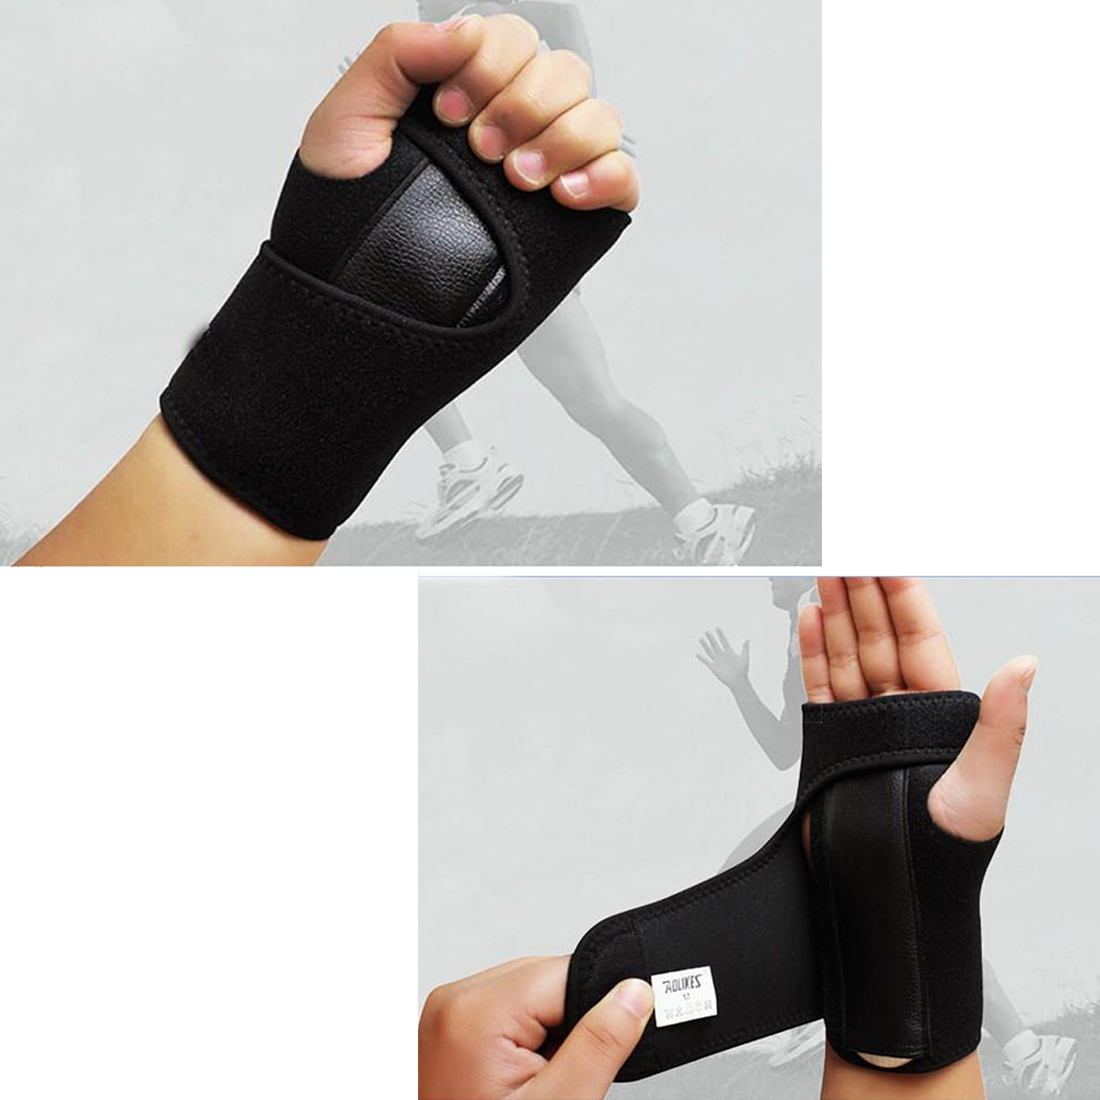 Wristband New Bandage Orthopedic Hand Brace Wrist Support Finger Splint Carpal Tunnel Sy ...